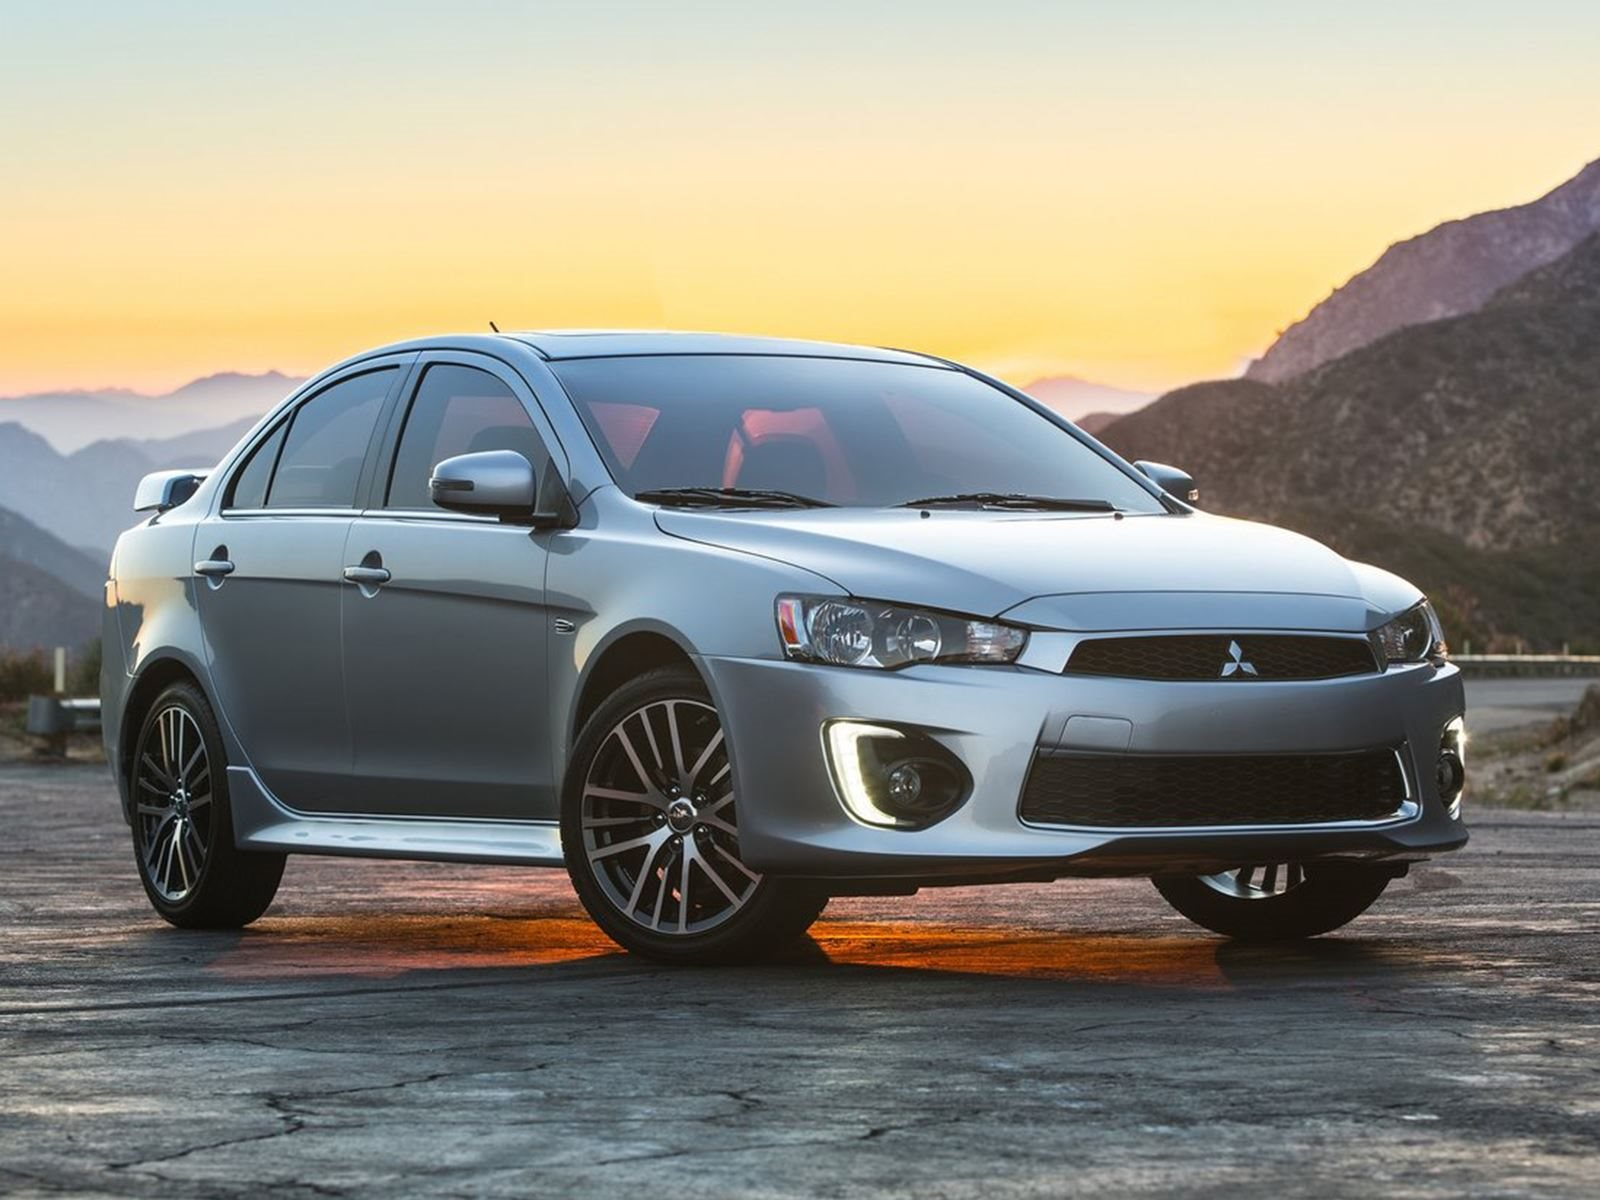 the immortal mitsubishi lancer will die outthe end of 2018 - carbuzz